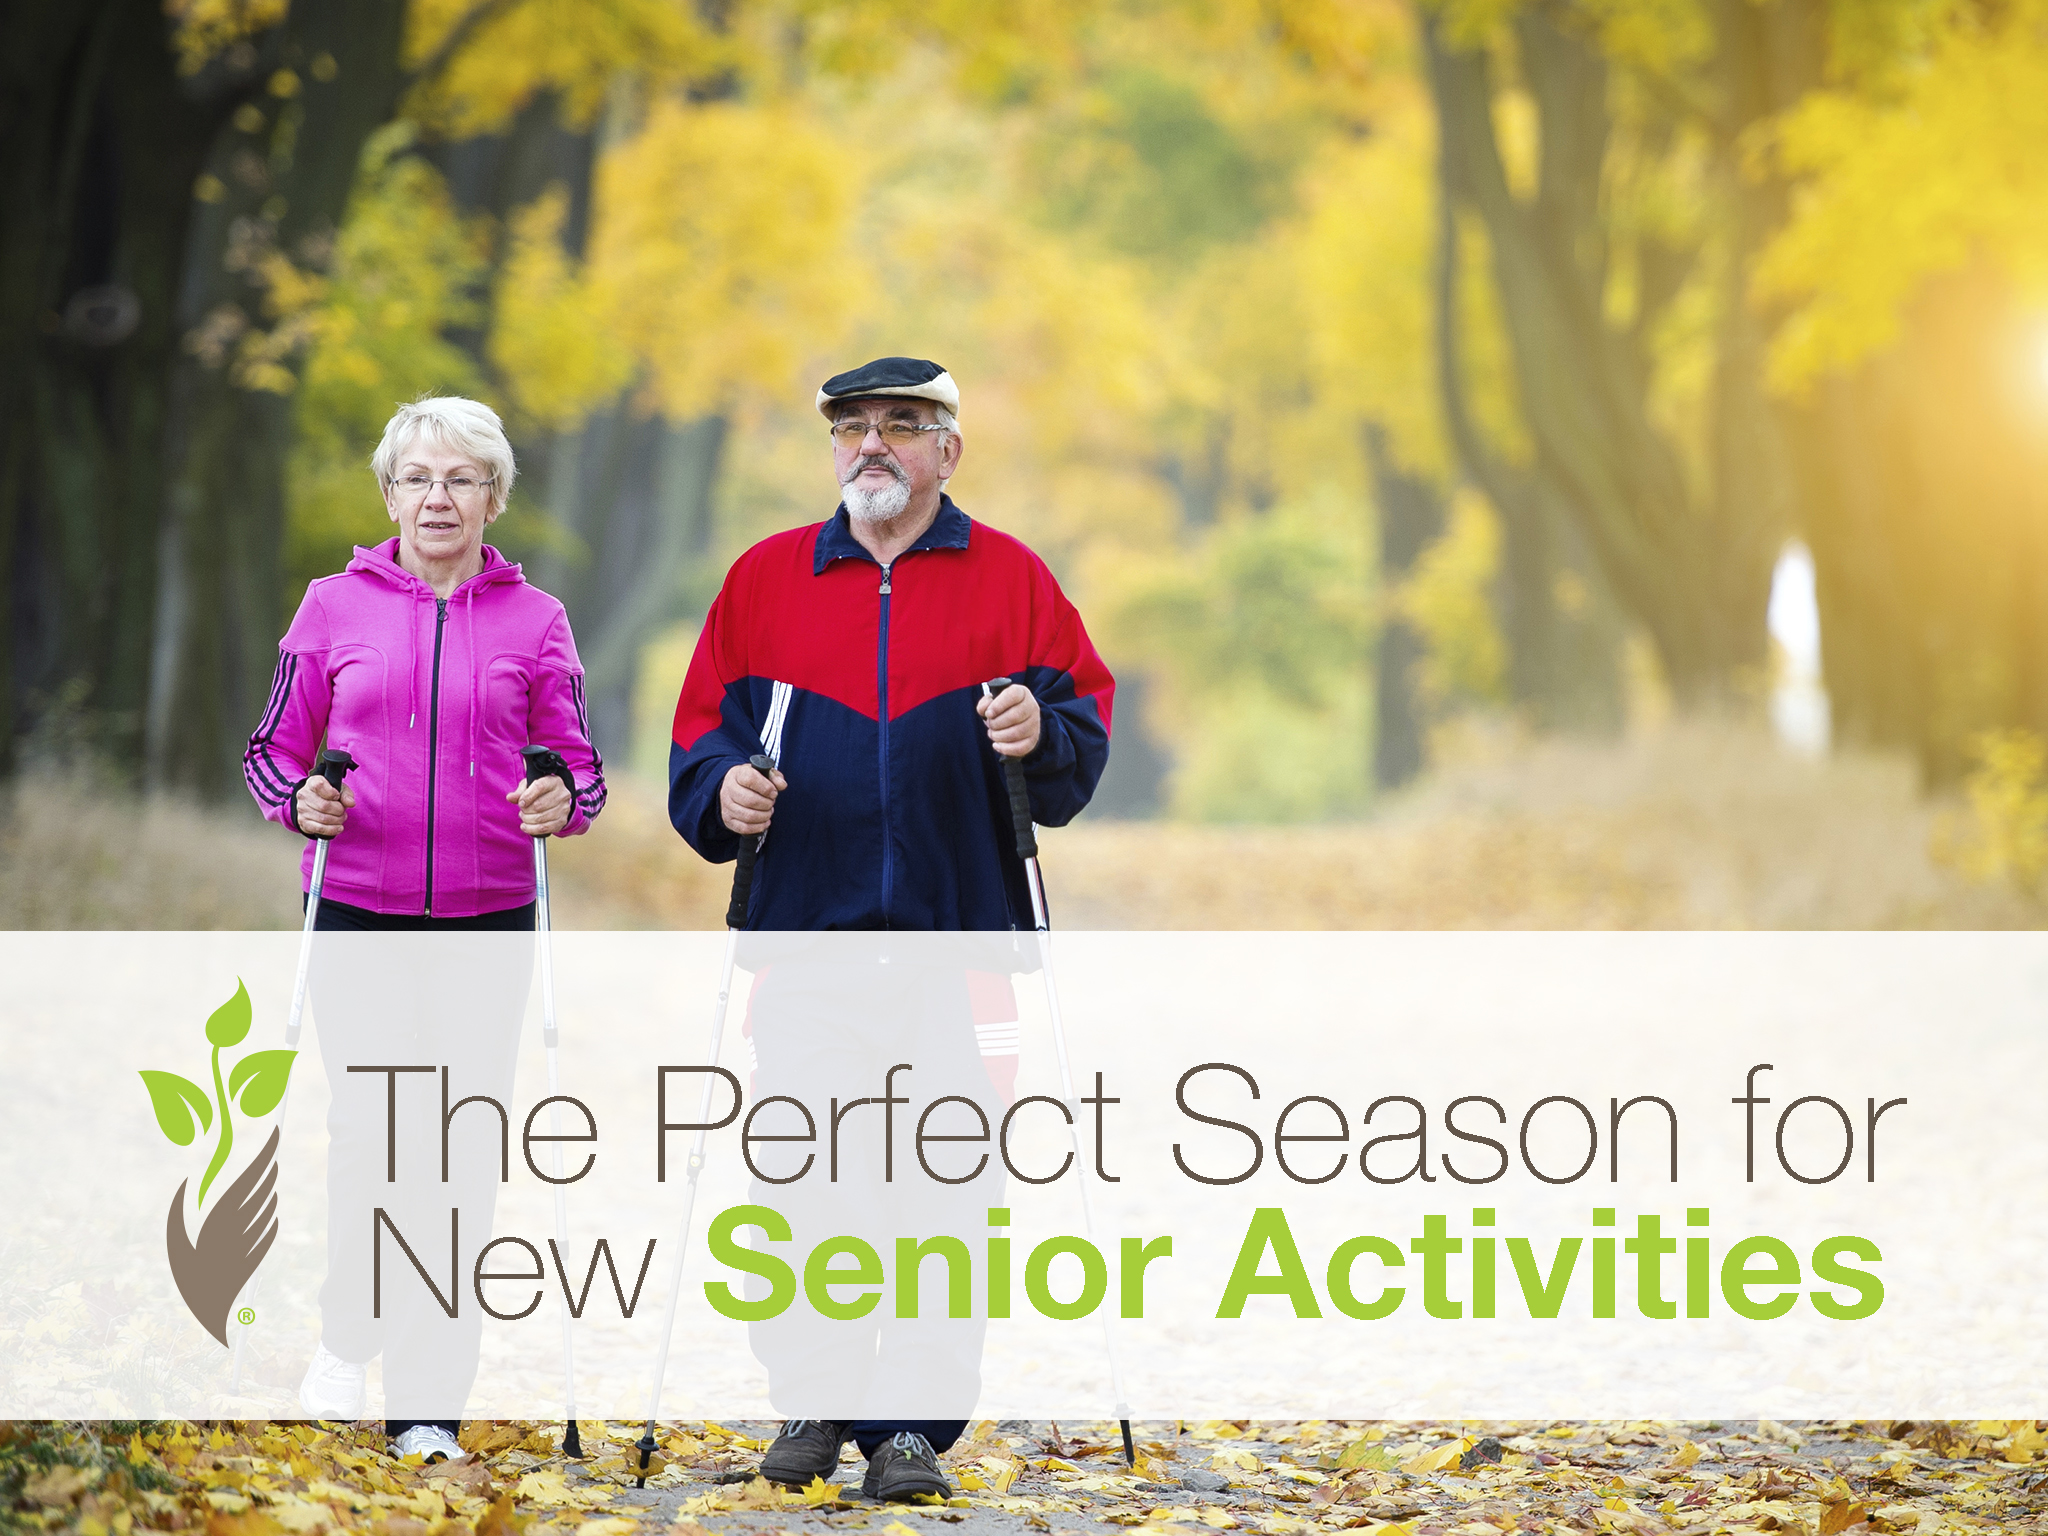 Fall: The Perfect Season for New Senior Activities